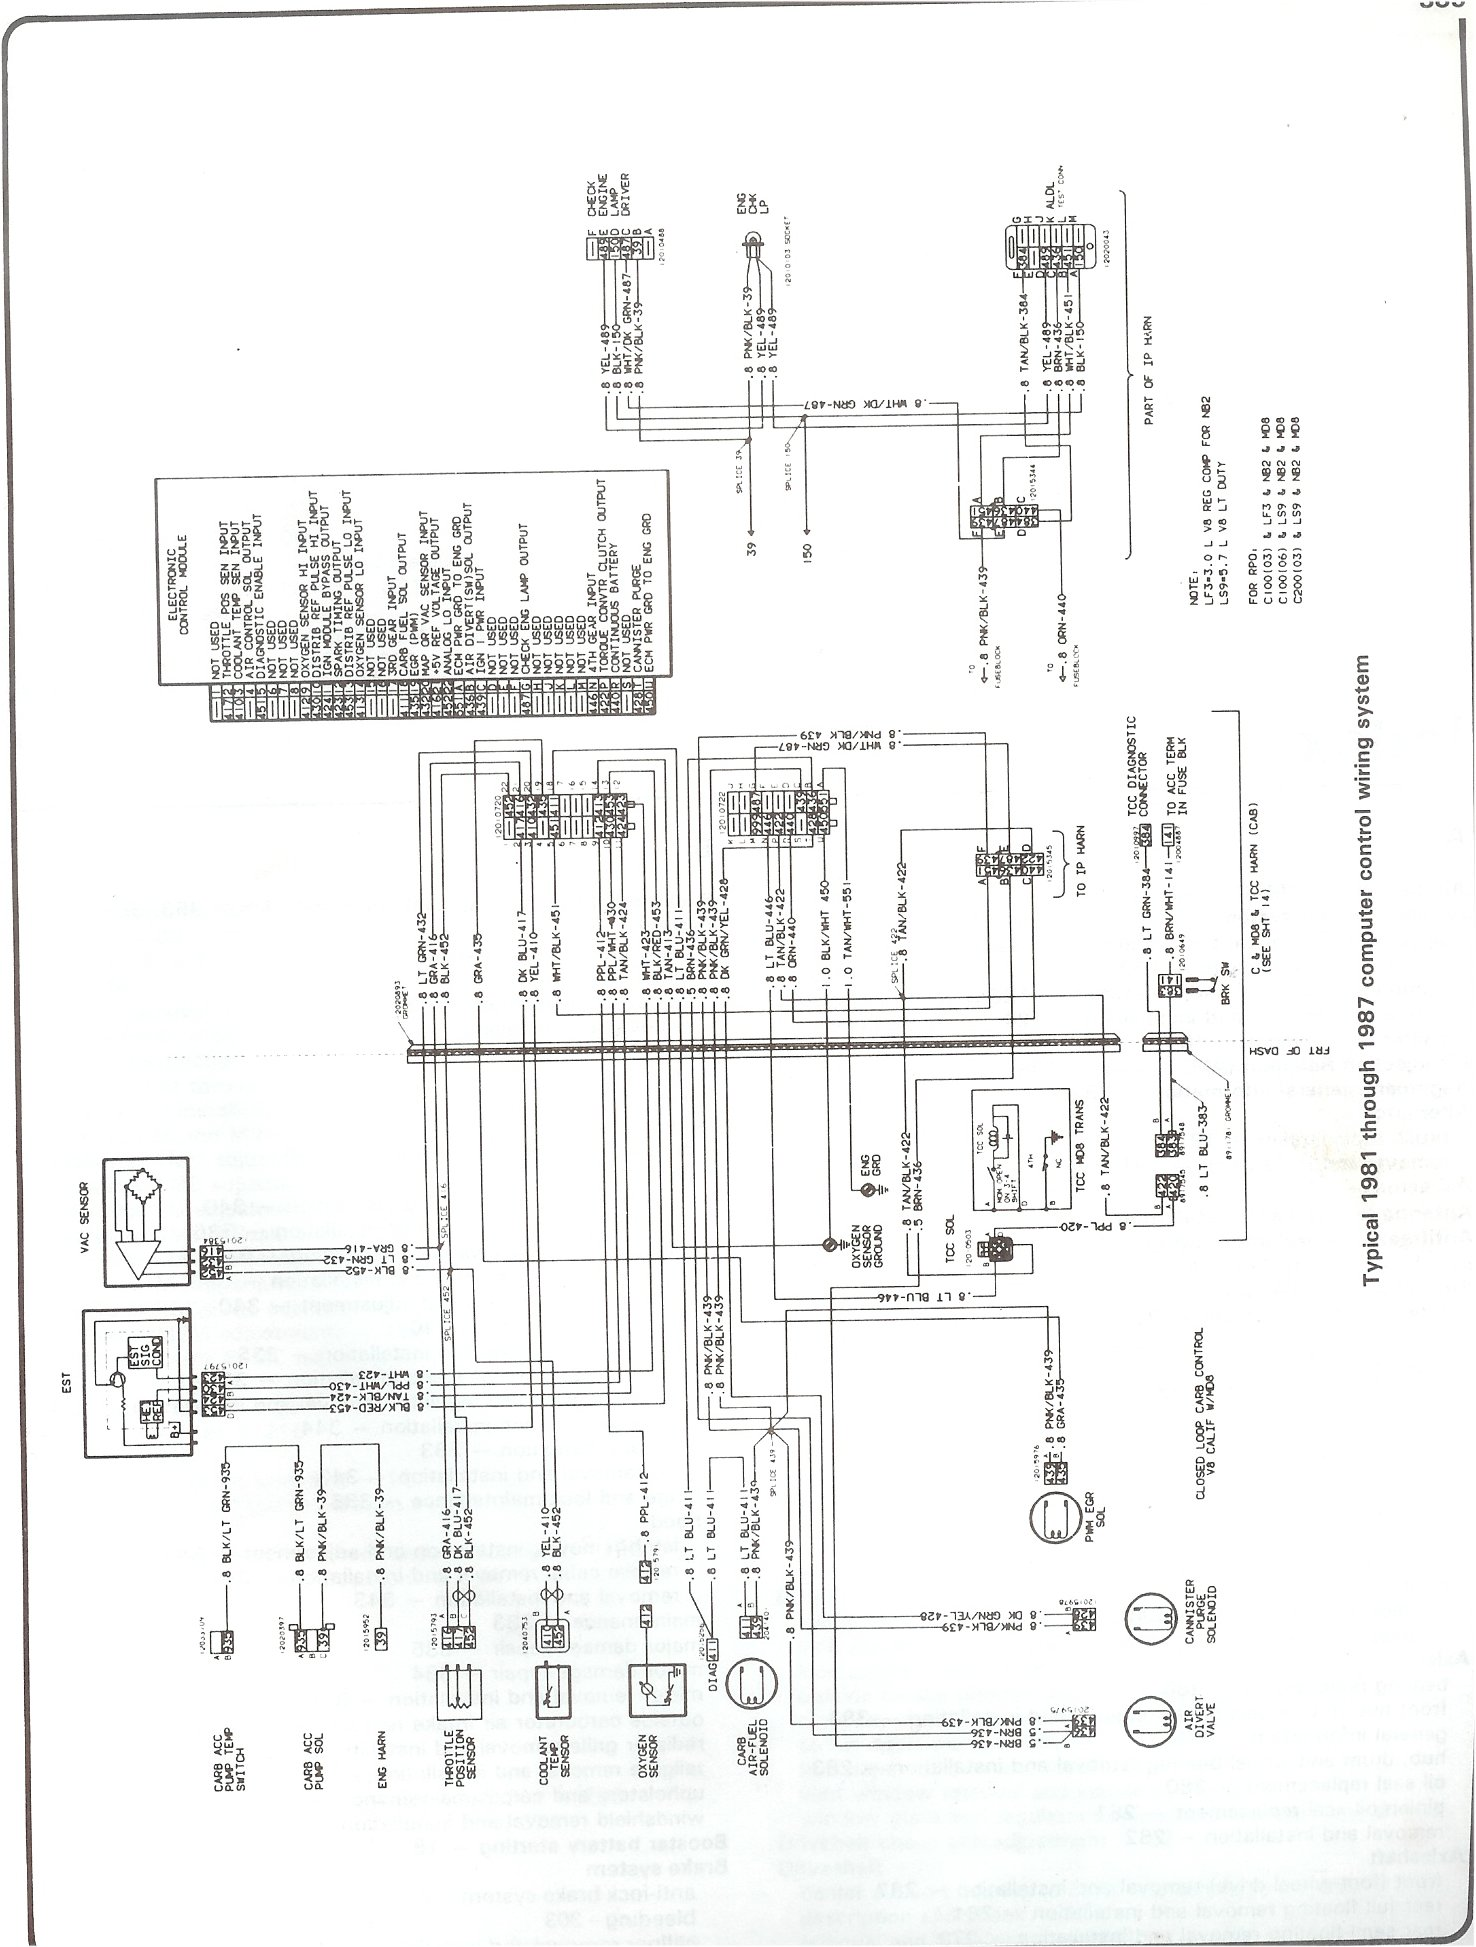 k r switch panel wiring diagram within diagram wiring and